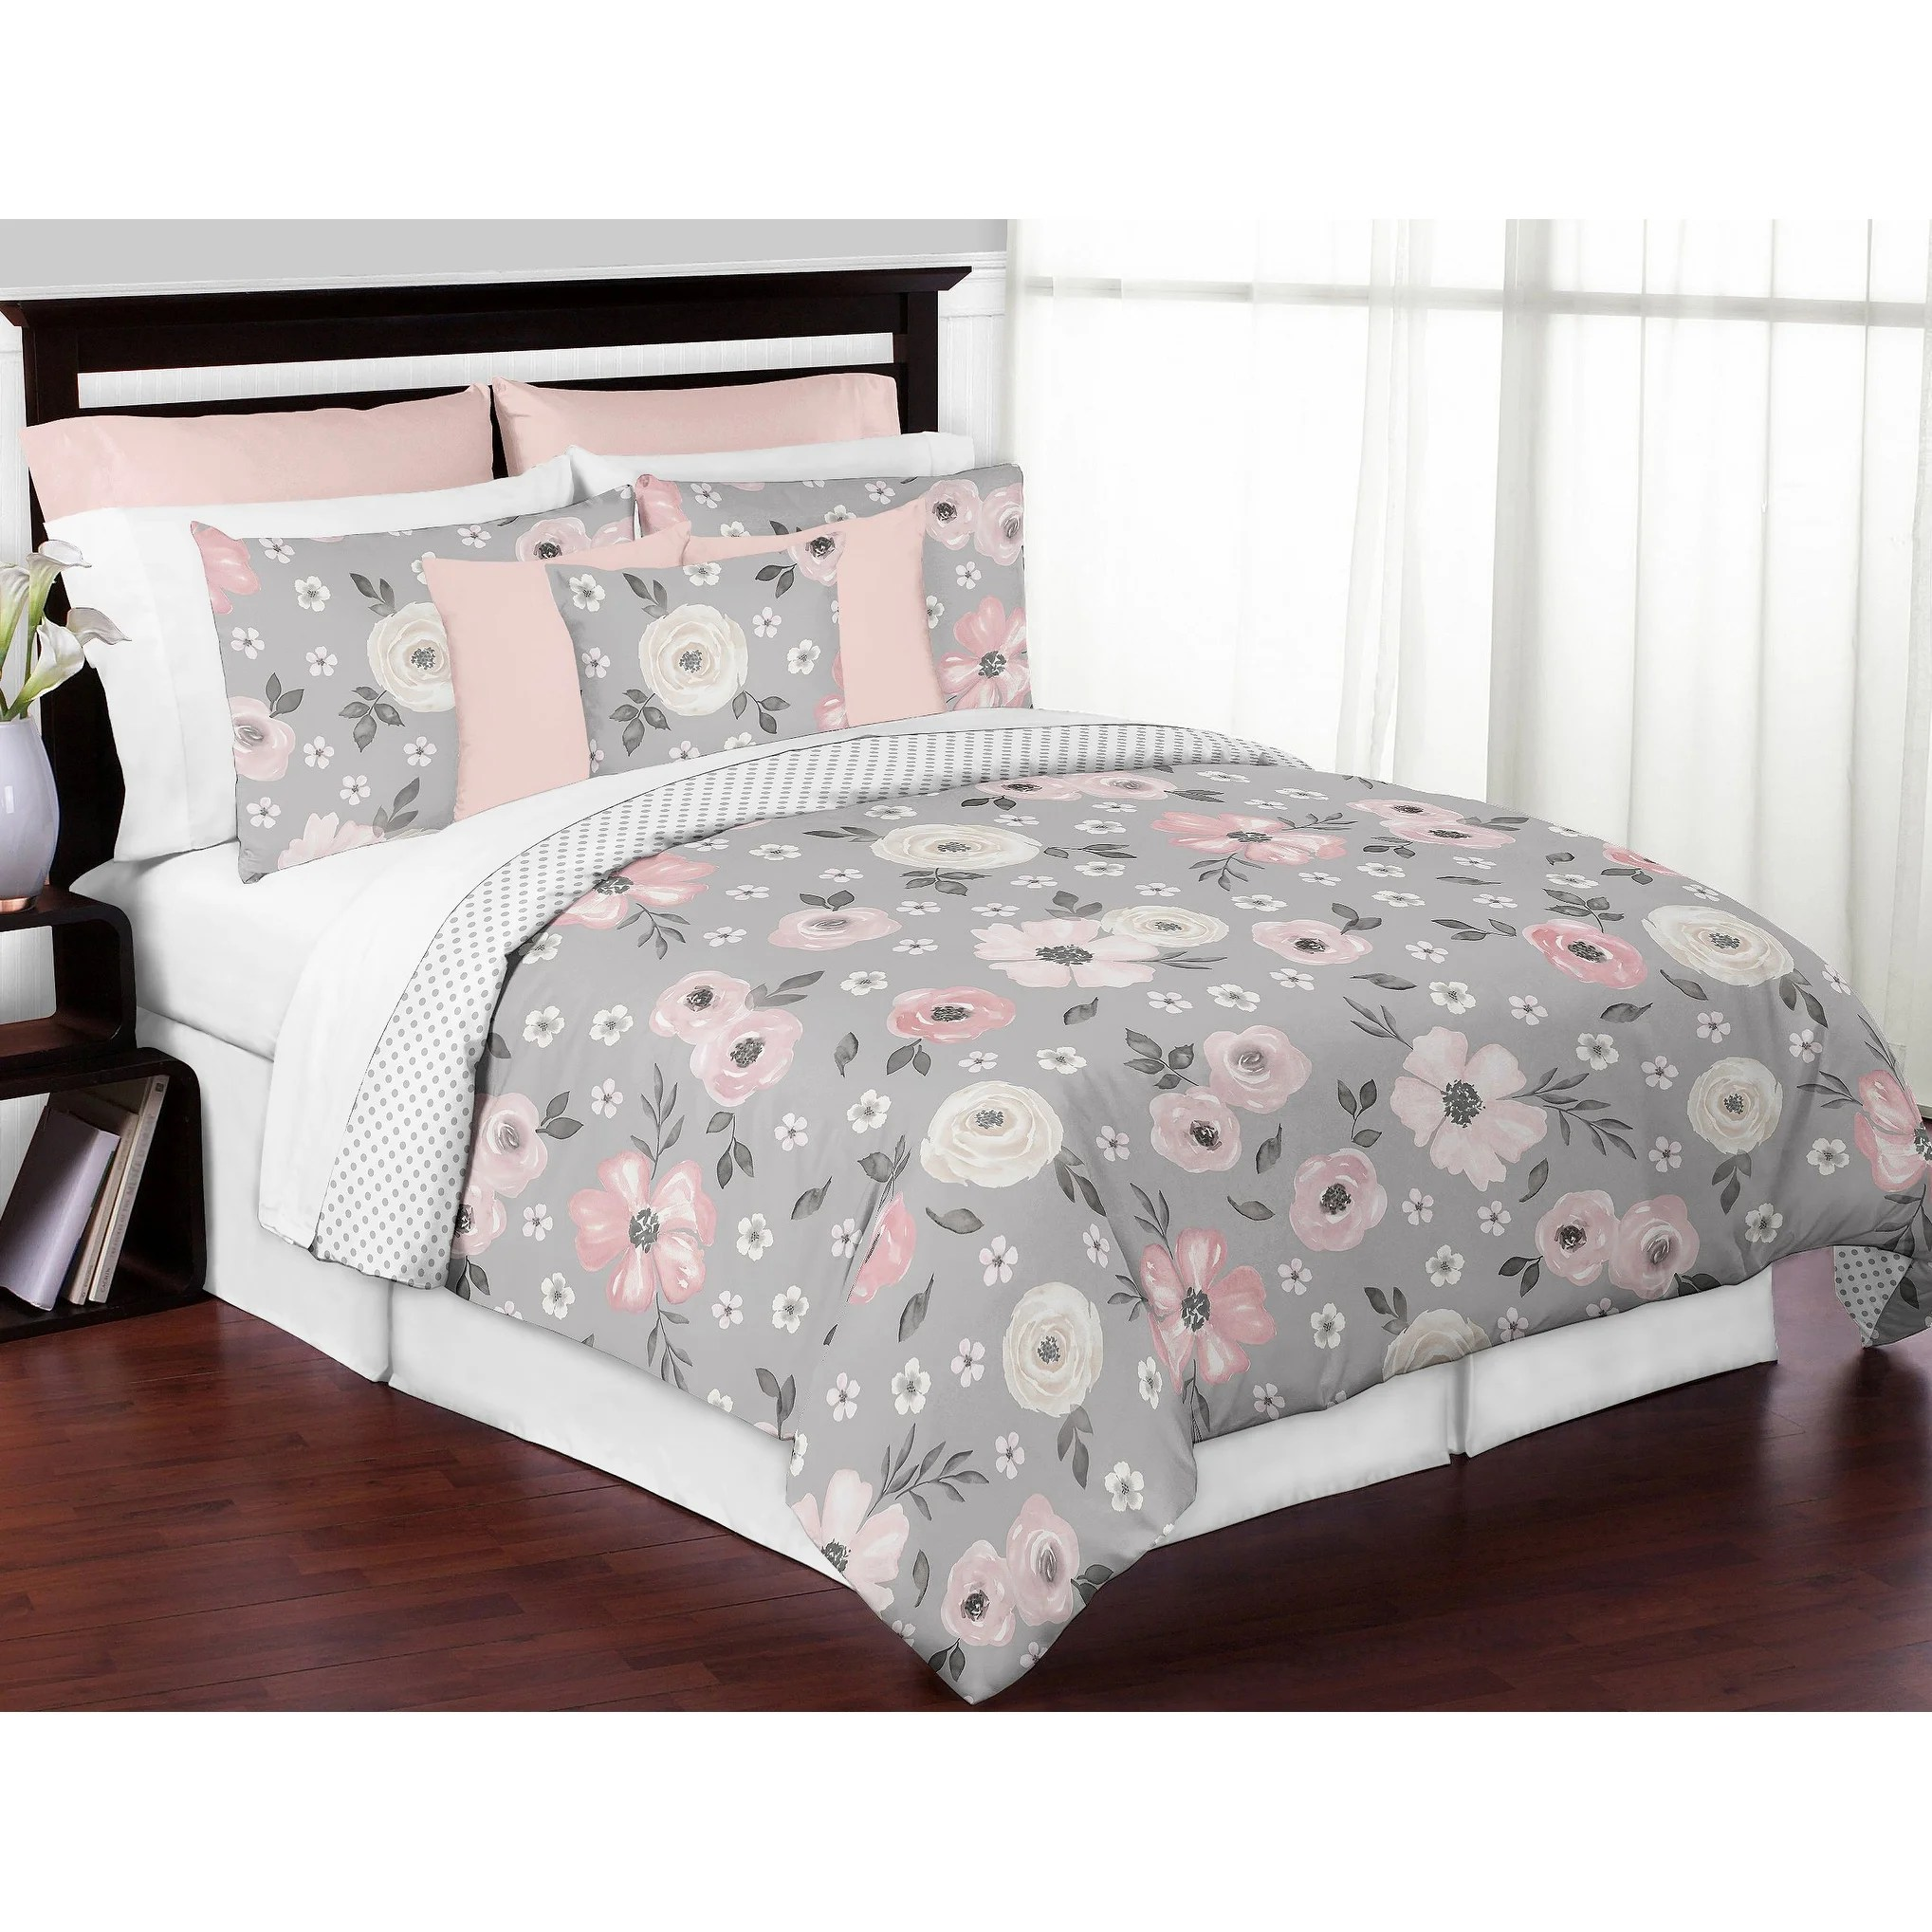 grey watercolor floral girl 3pc full queen comforter set blush pink gray white shabby chic rose flower polka dot farmhouse